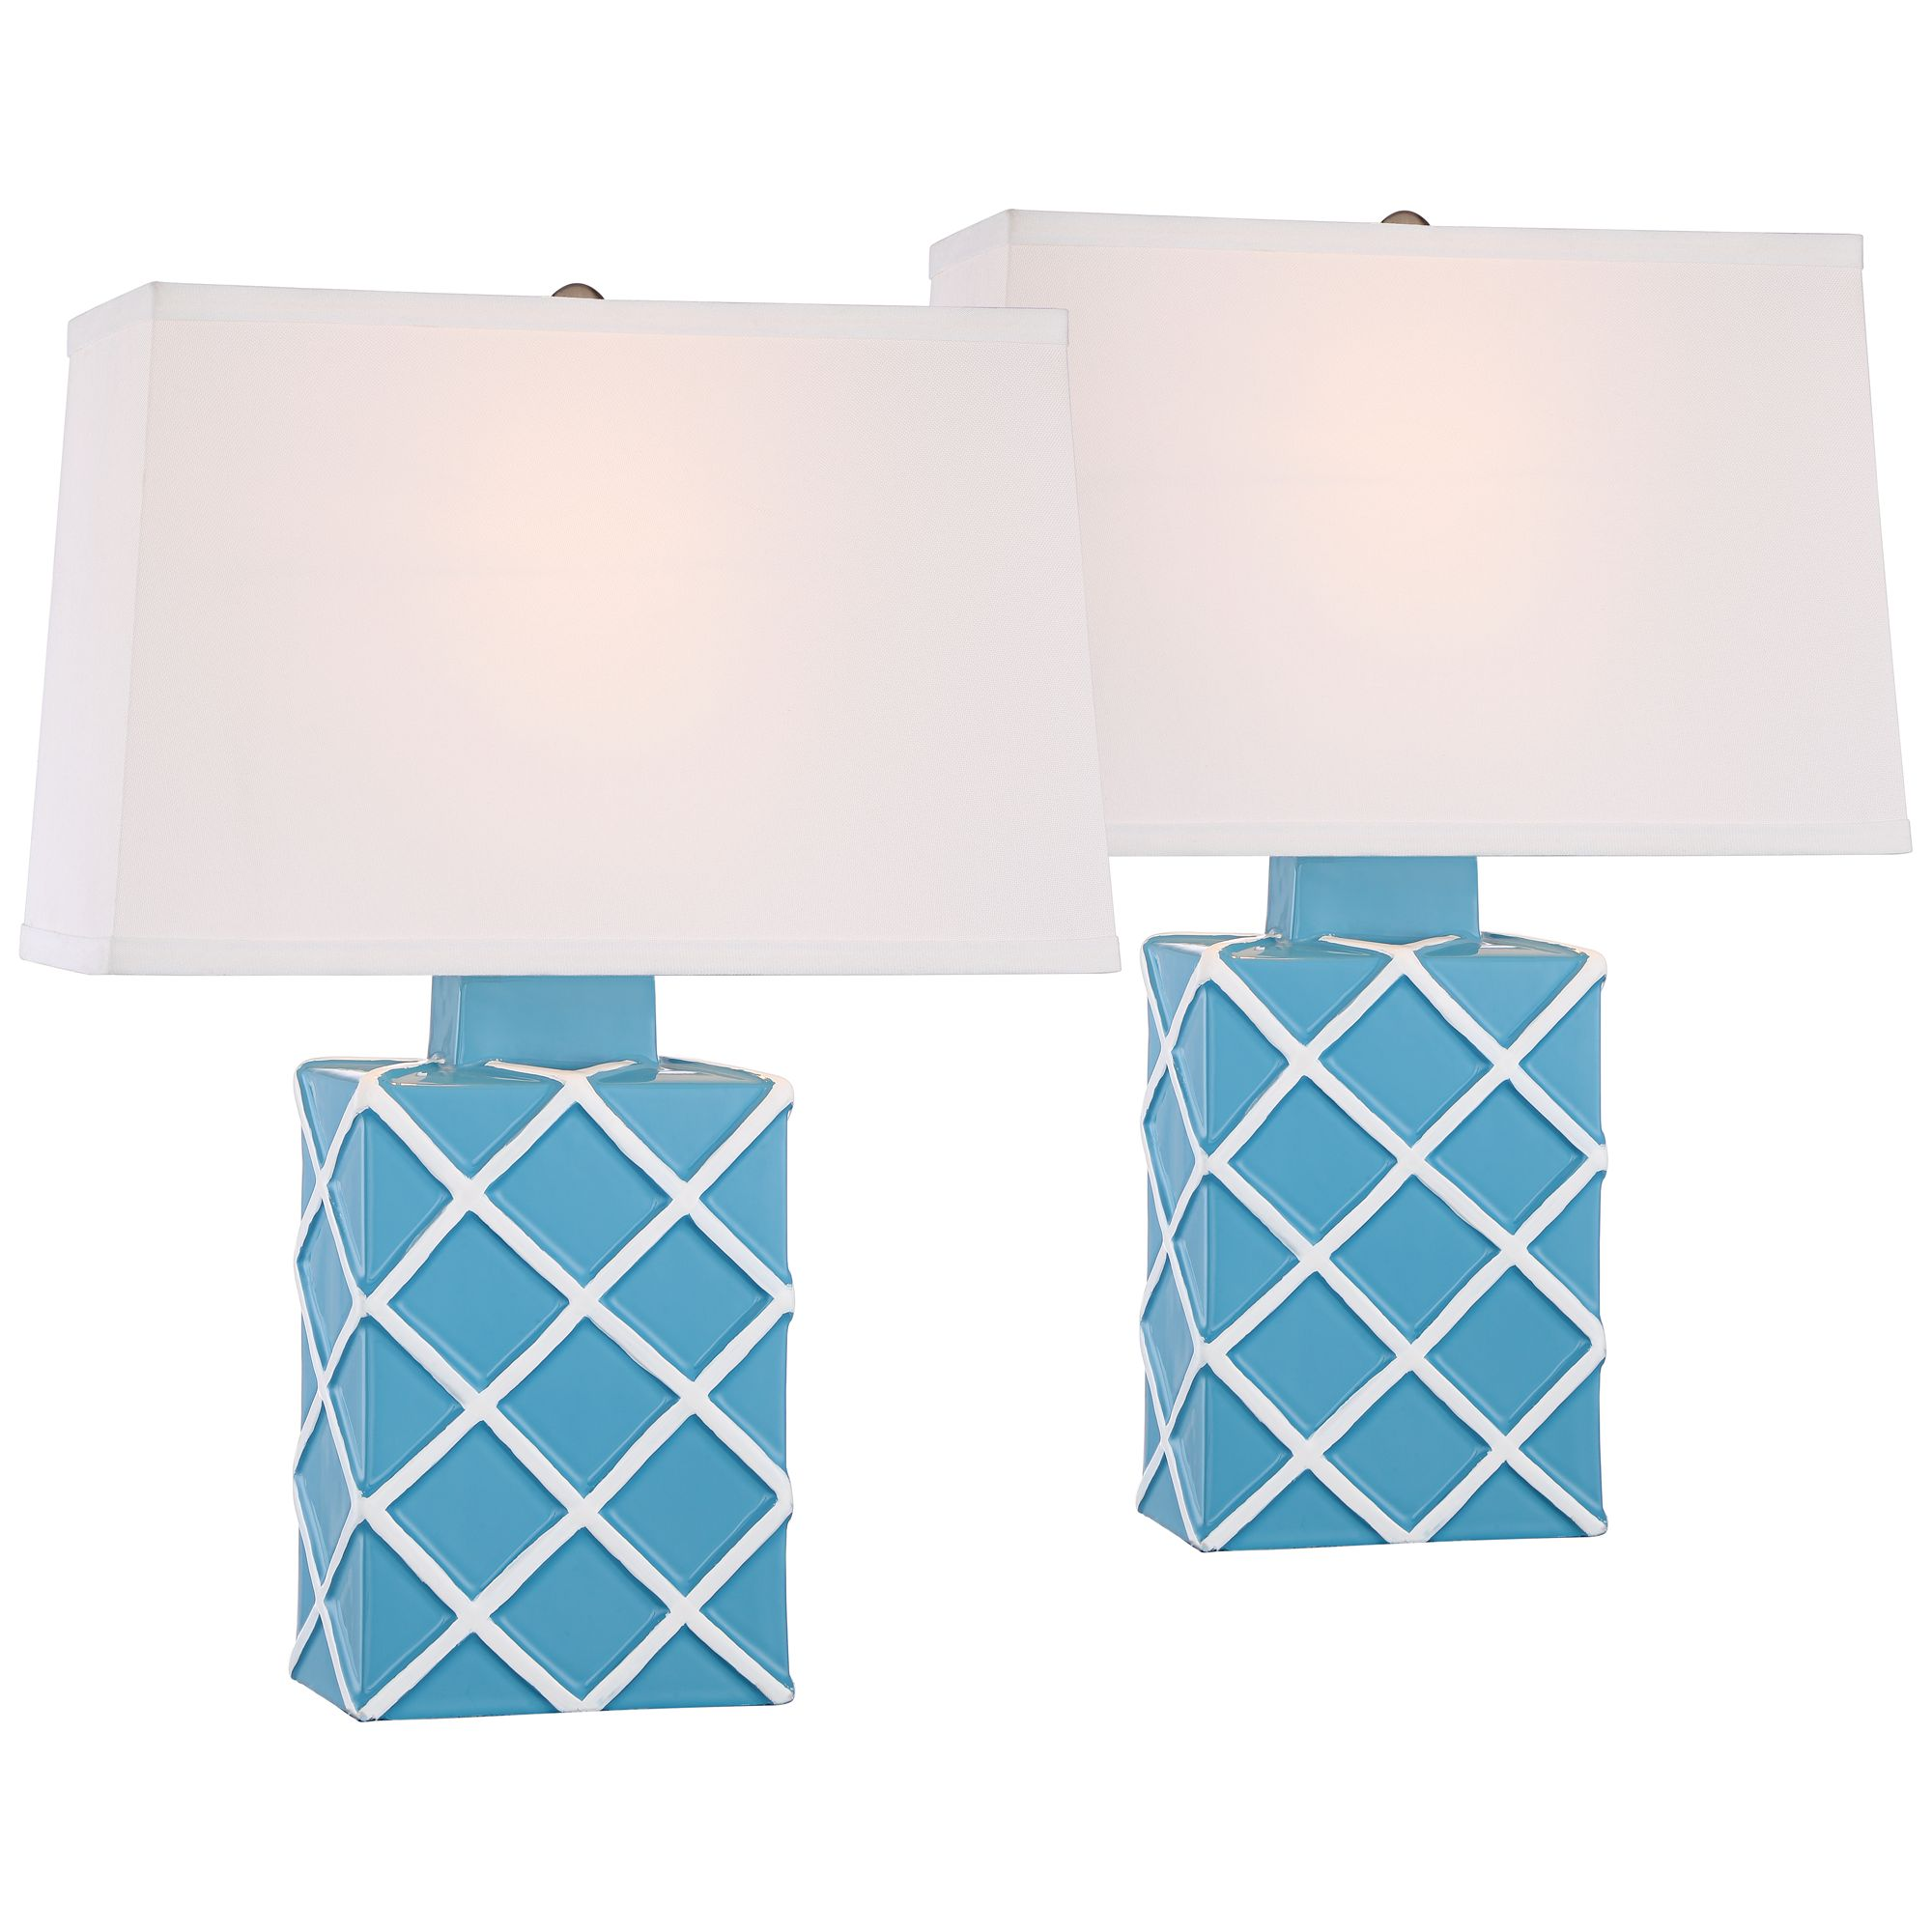 Accent Lighting Of Contemporary Table Lamps For Living: 360 Lighting Modern Accent Table Lamps Set Of 2 Ceramic